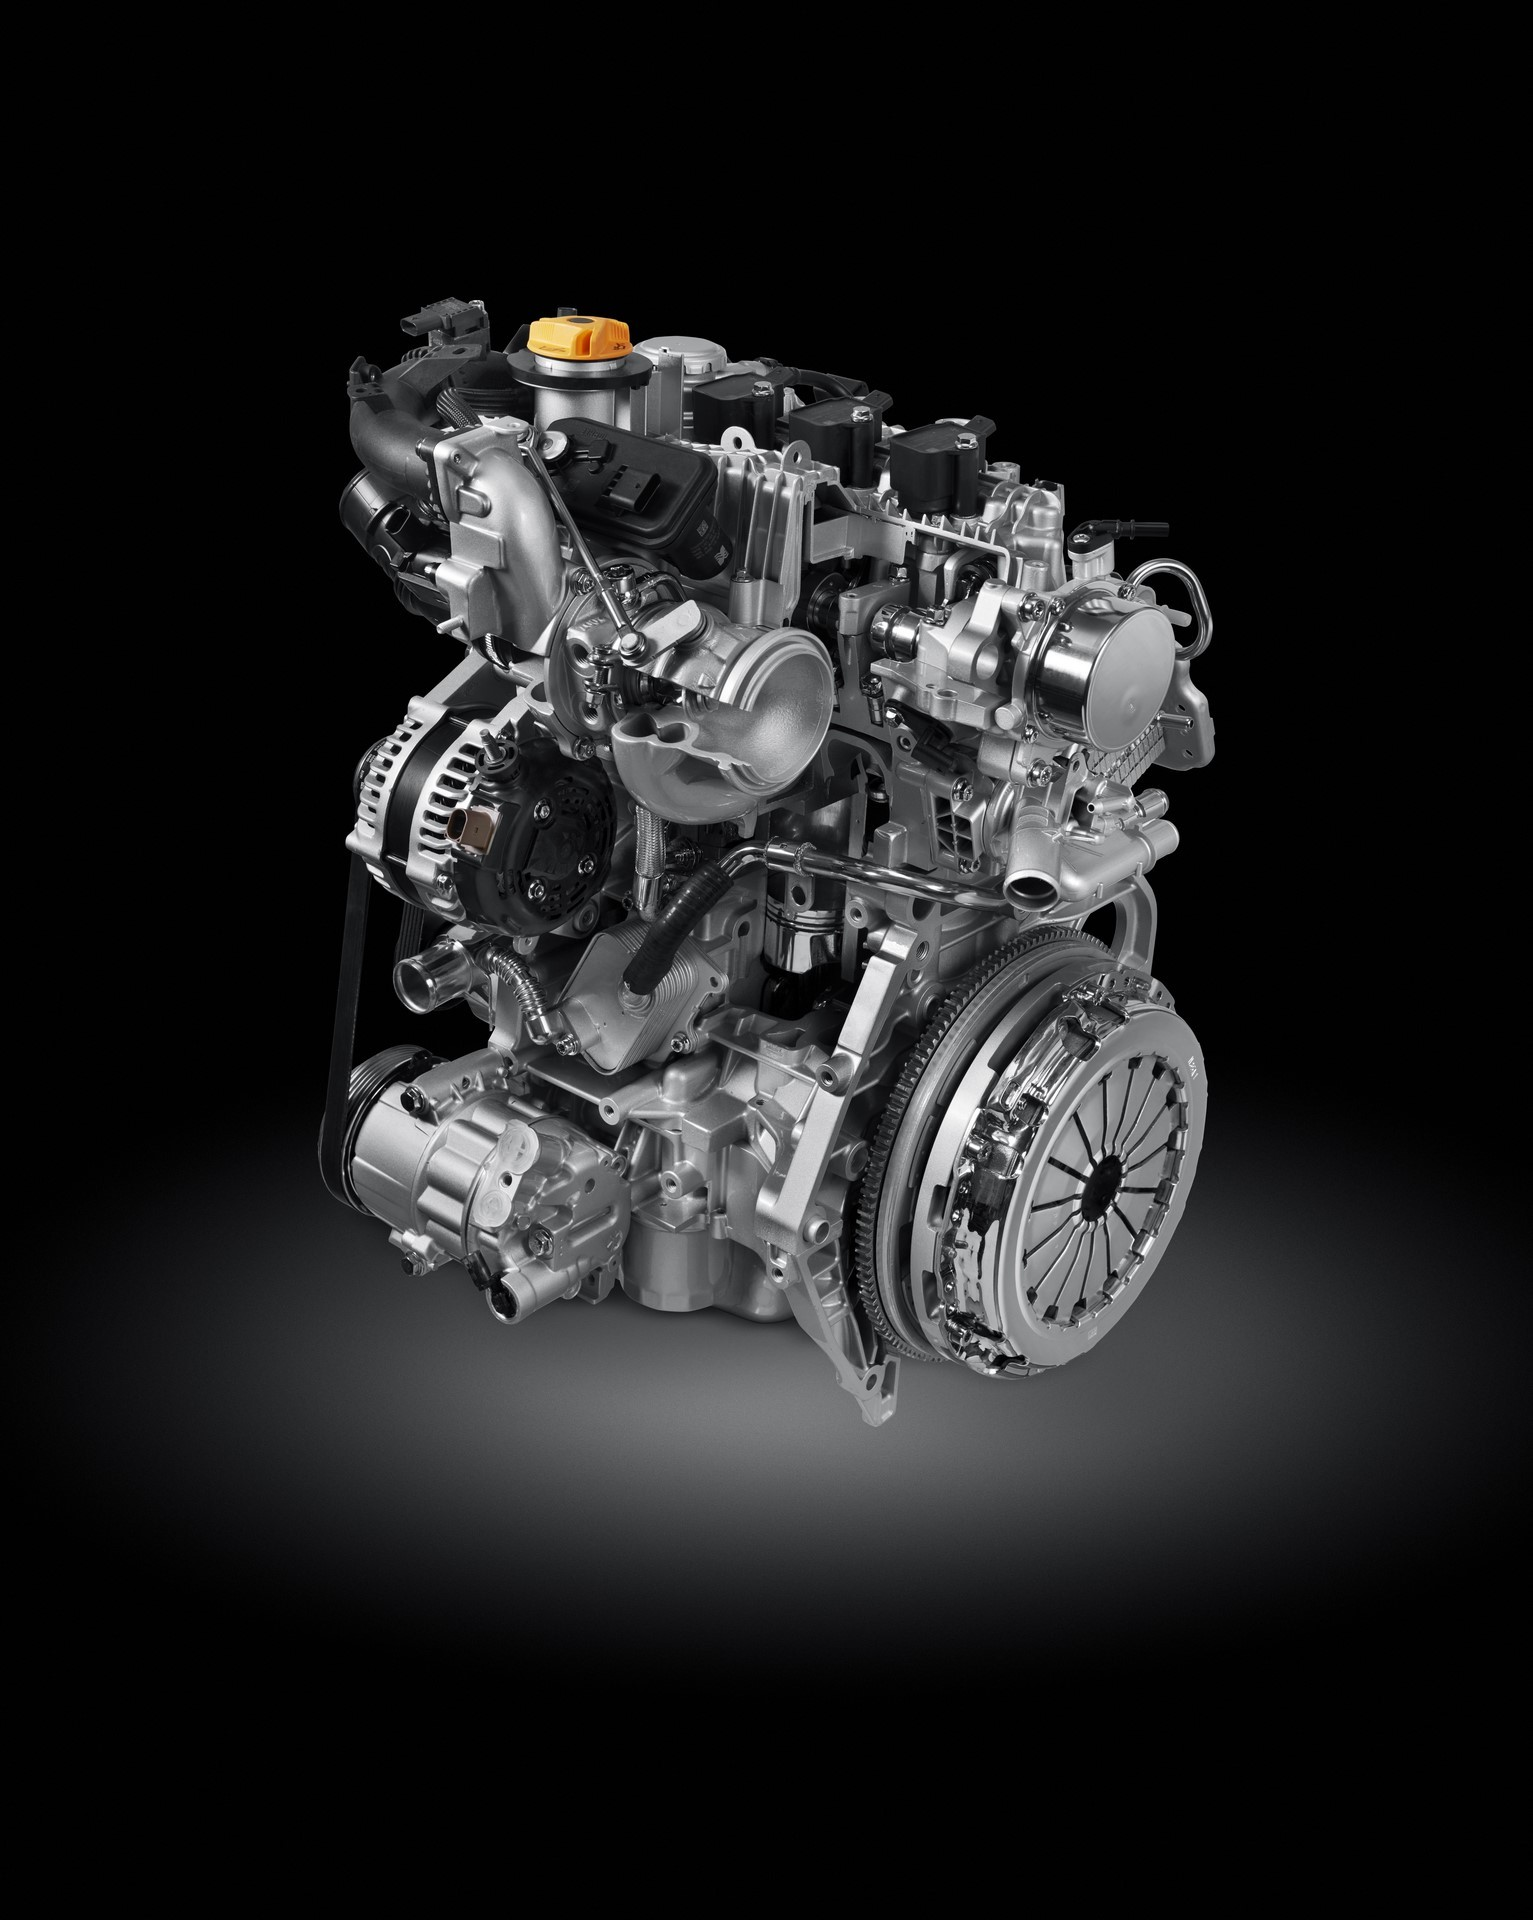 180828_Fiat_New-10L-Turbo-3-cylinder-120HP_14